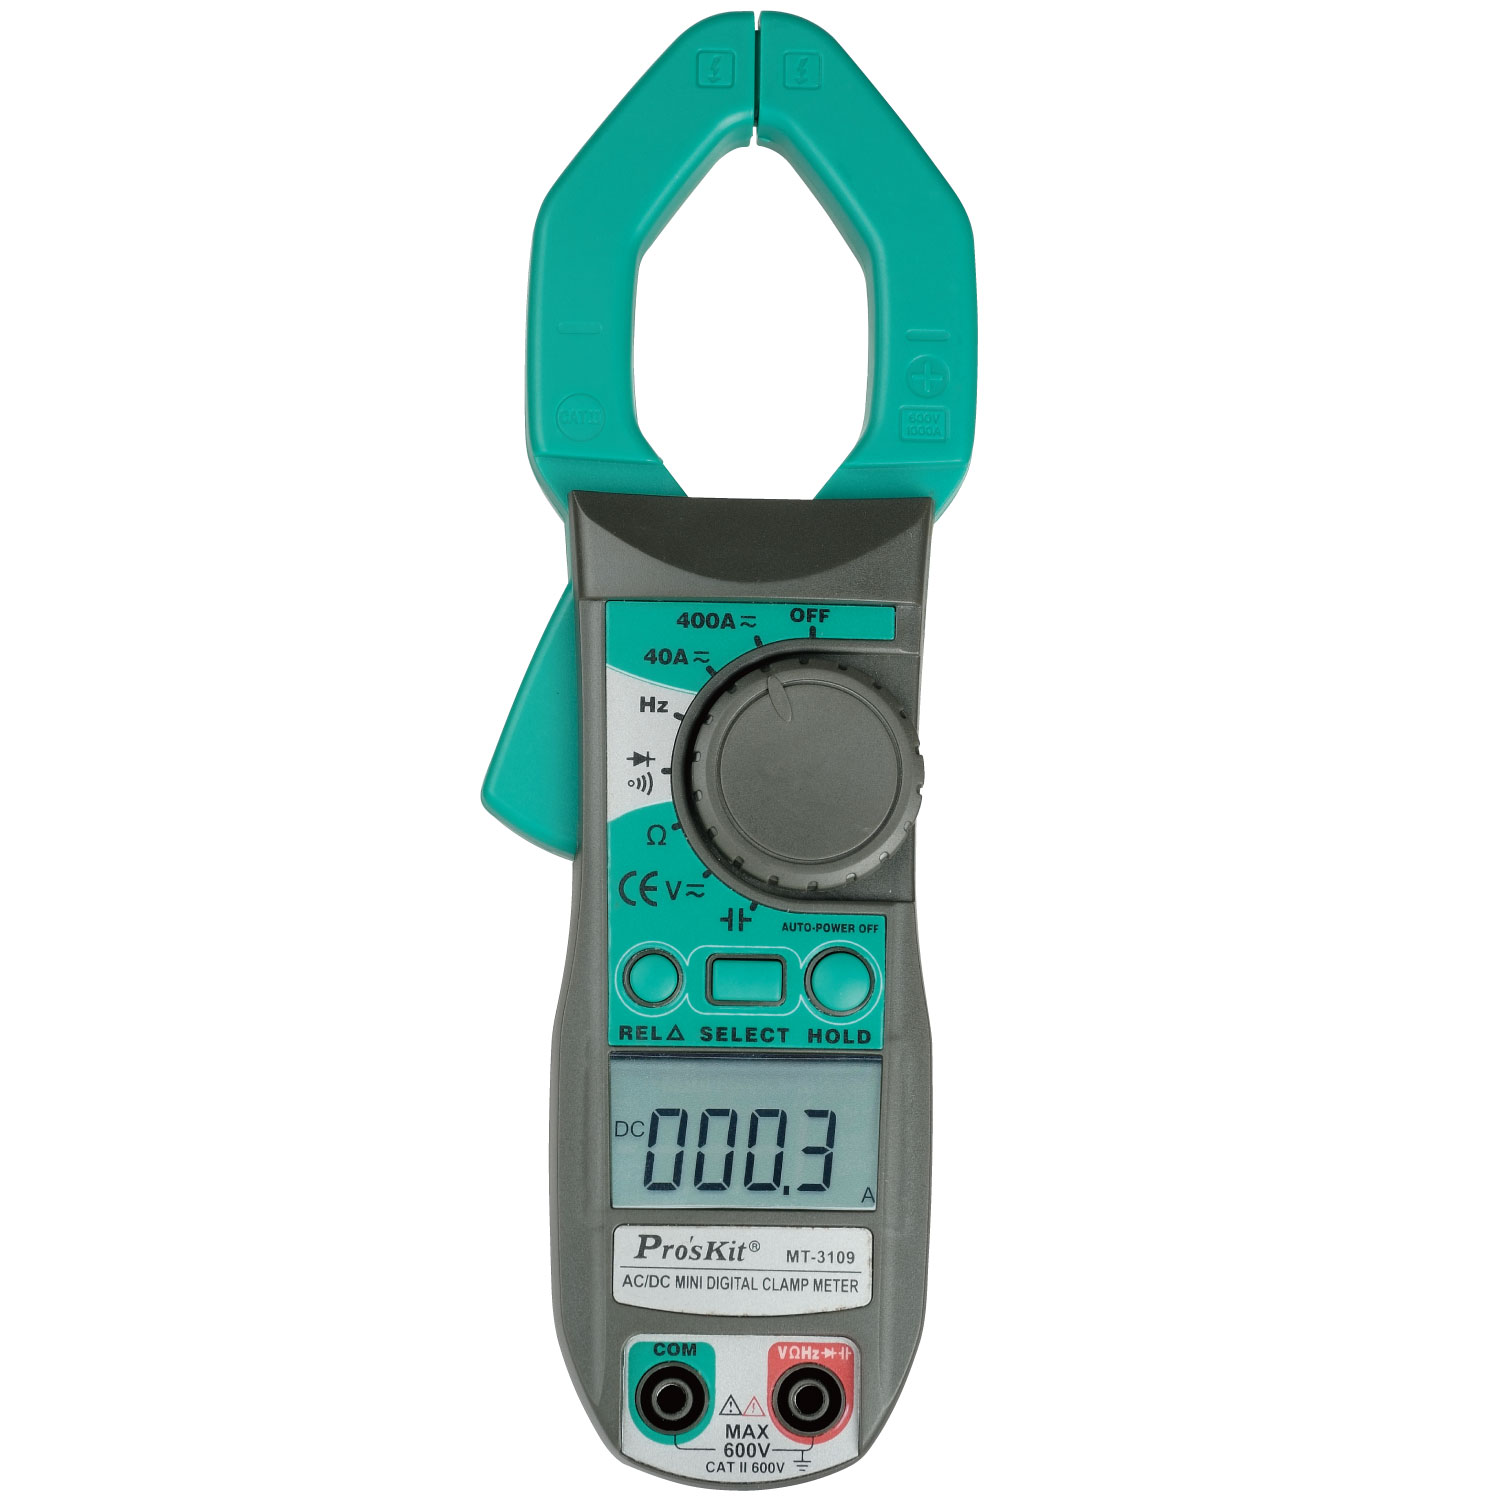 MT-3109 3 3/4 Digital Multimeter Clamp Meter  DC AC Voltage Current Capacity Resistance Tester renfert mt 3 ua купить